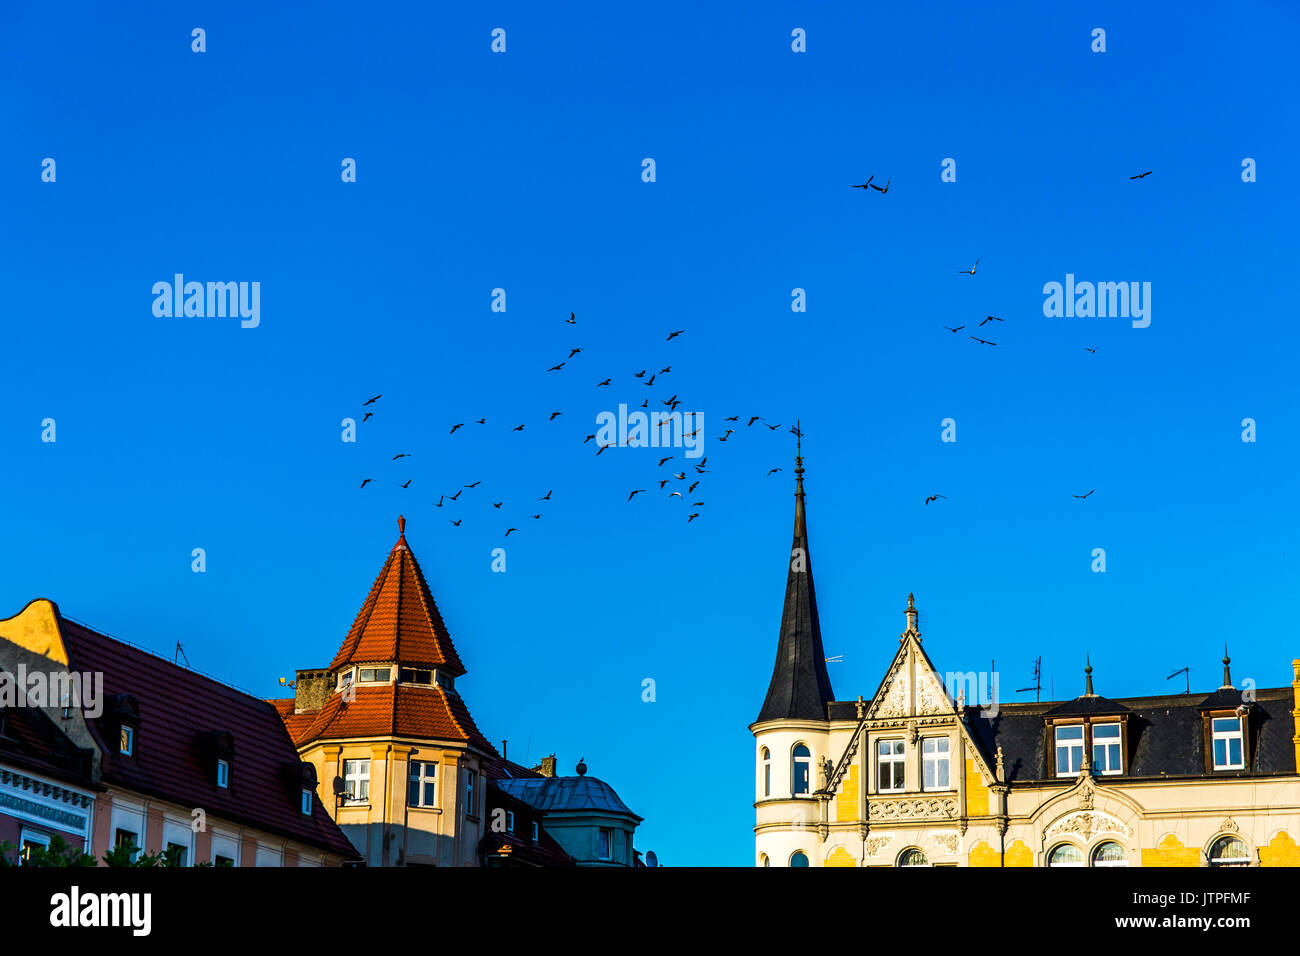 Birds flying above buildings on the square in Pszczyna, Poland. - Stock Image